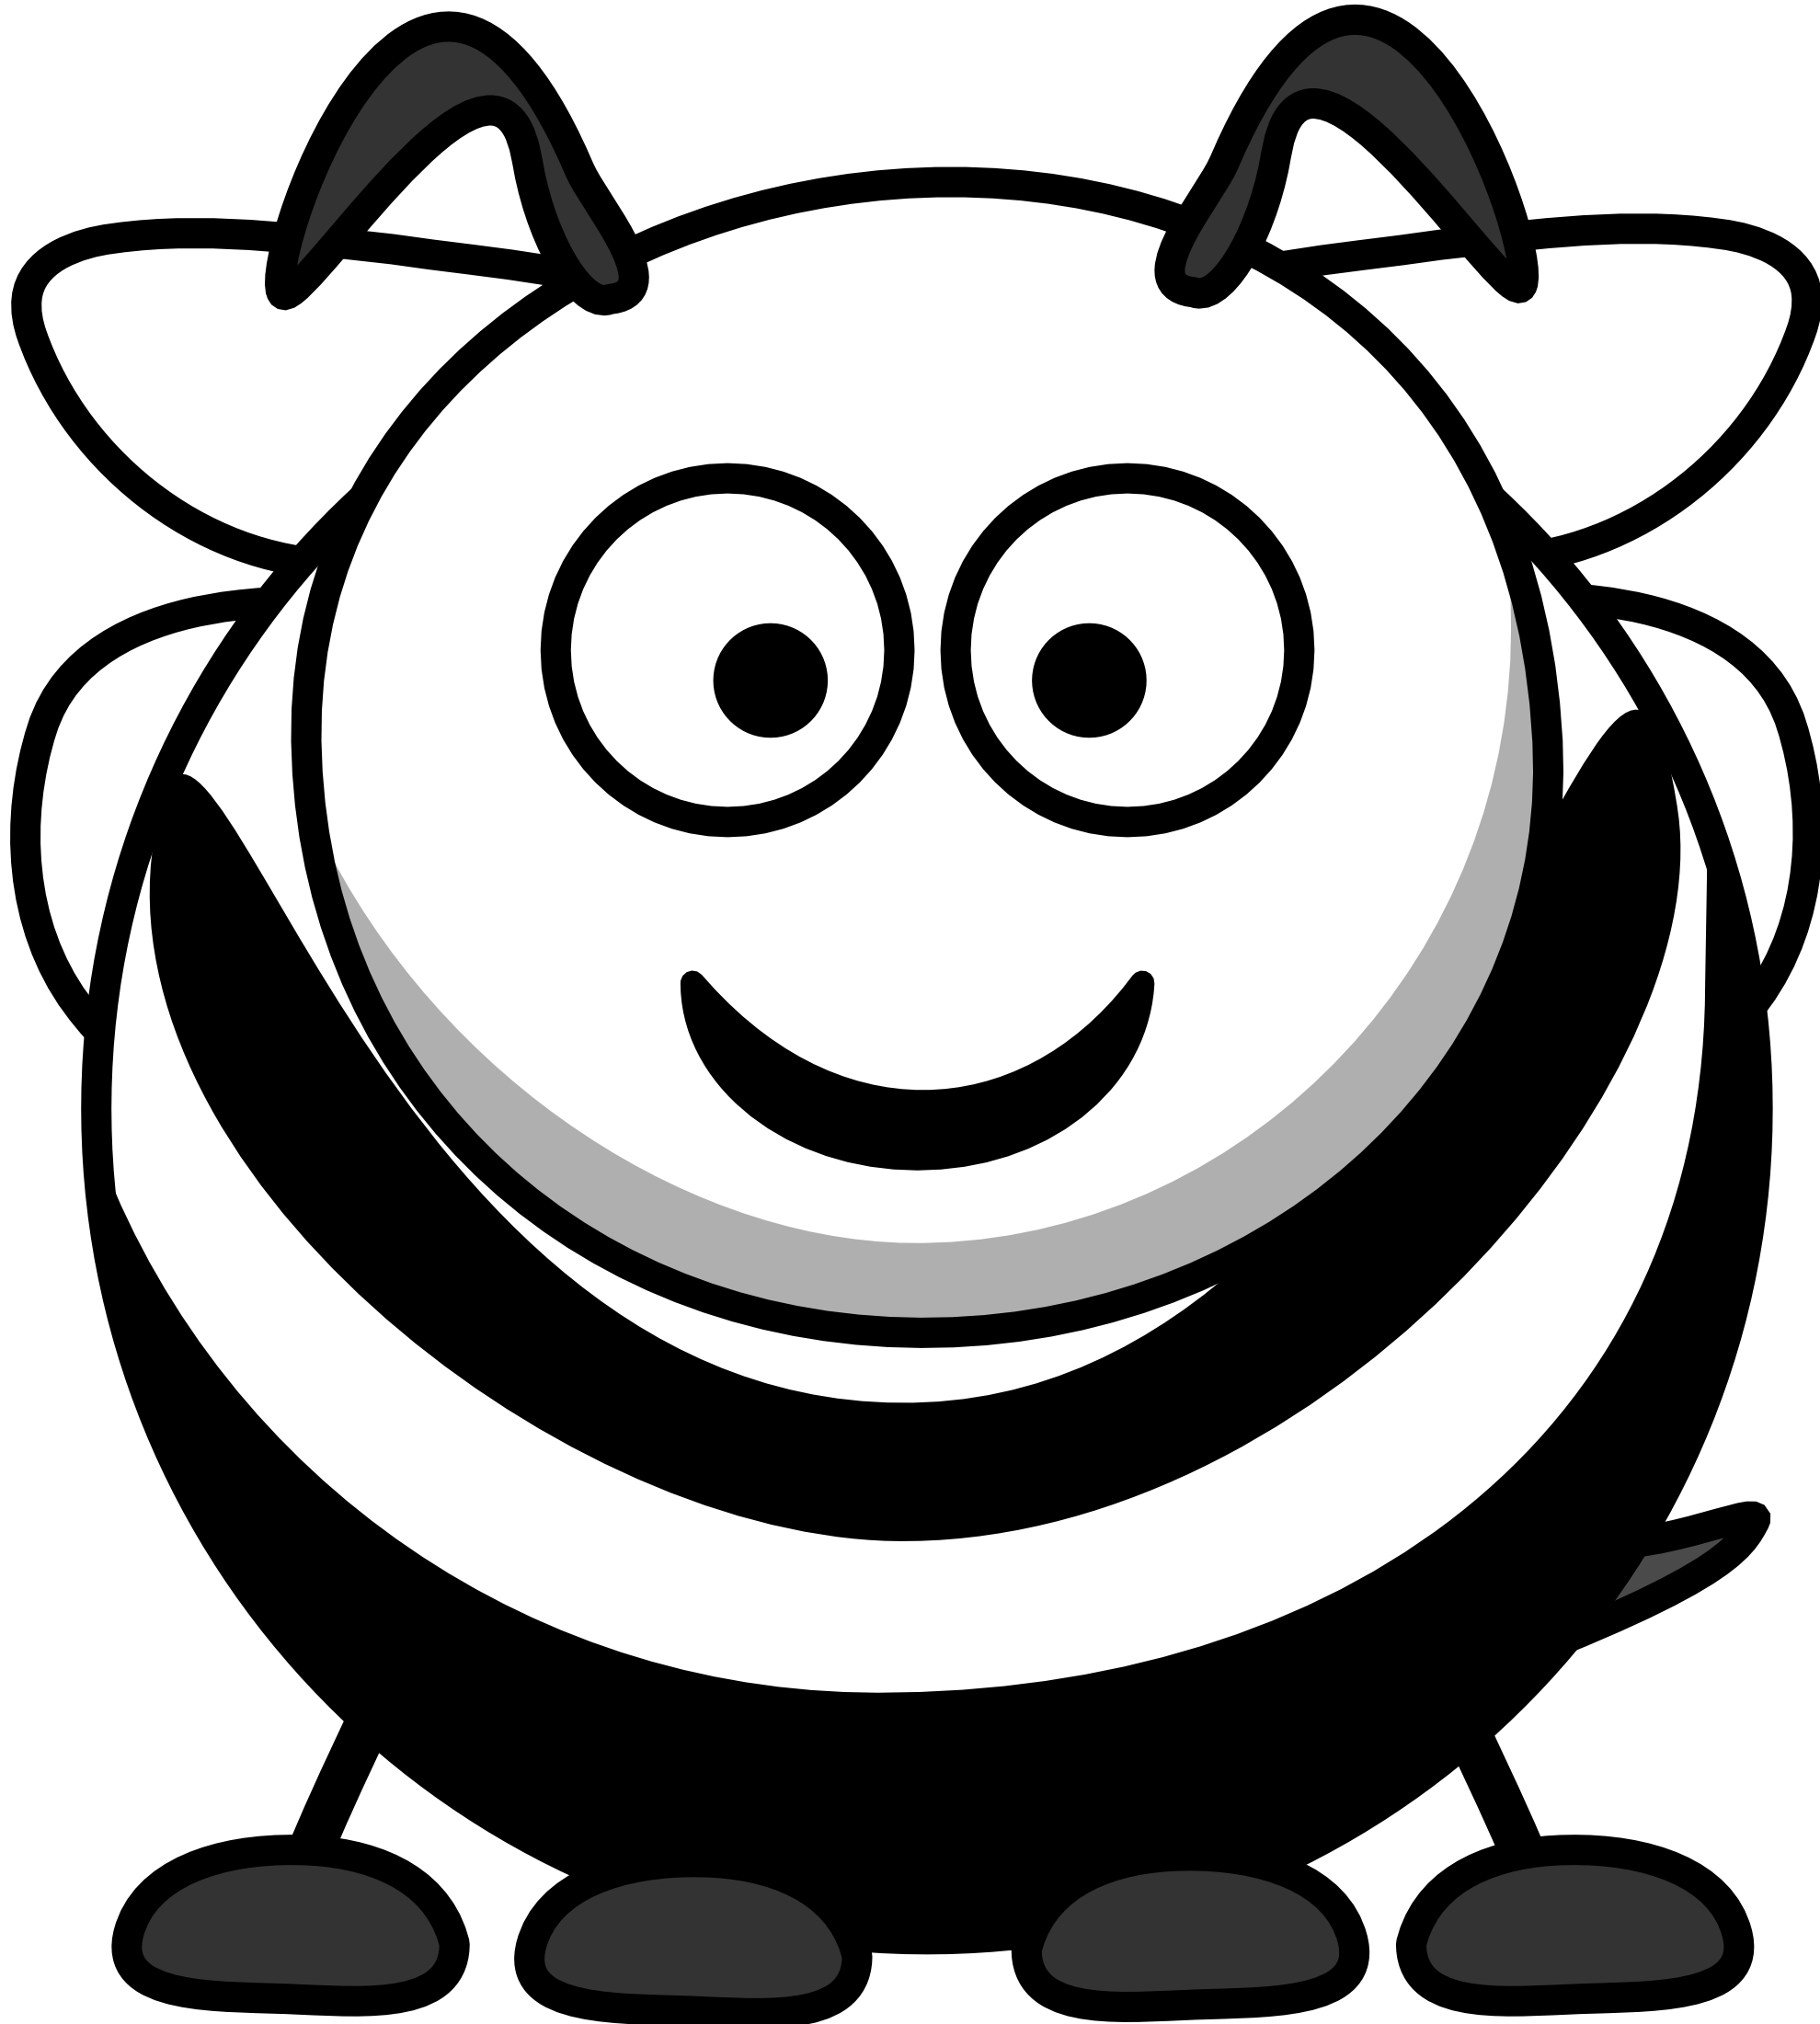 Free Bee Clipart Black And White Bee 2 Black White Line Art